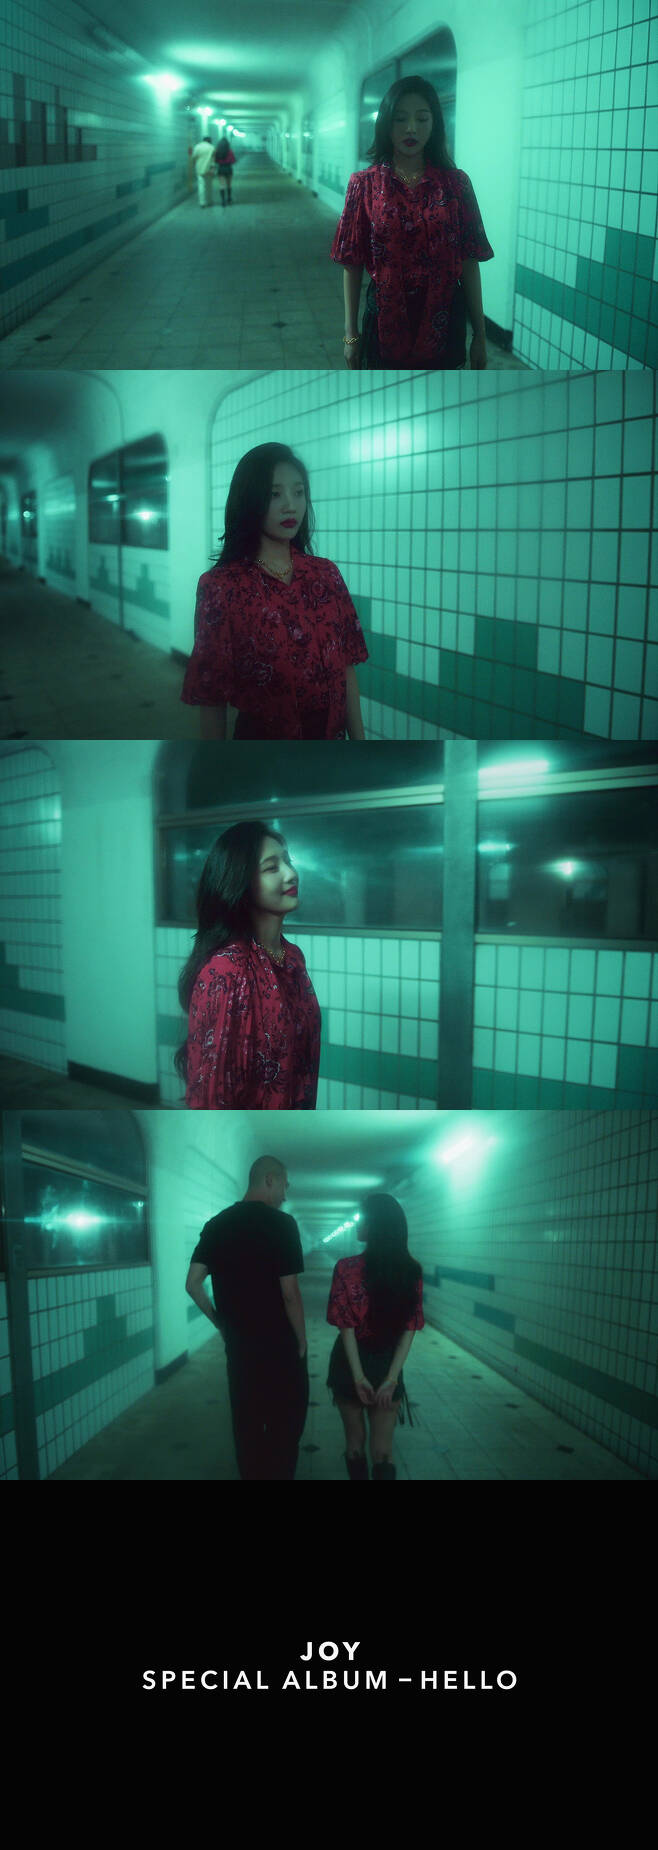 The prologue video, released on YouTube and Naver V LIVE Red Velvet channels on the 28th, features a faint and emotional atmosphere of Day By Day on this album.In addition, a second prologue video will be released to meet Every Time (Be There For You), which was reborn on the 29th with Joys sensibility, and it will add fun as it is also connected to the title song Hello music video.The album includes a total of six songs, including the title song Hello and the pre-release songs Je Taime, Day by Day, Im Going to Be Good (If Only), Happy Bus Day to You (Happy Birthday To You), and Everytime.Meanwhile, Joy Special album Hello will be released on various music sites at 6 pm on the 31st and will be released on June 3rd.Copyright c Korea www.news1